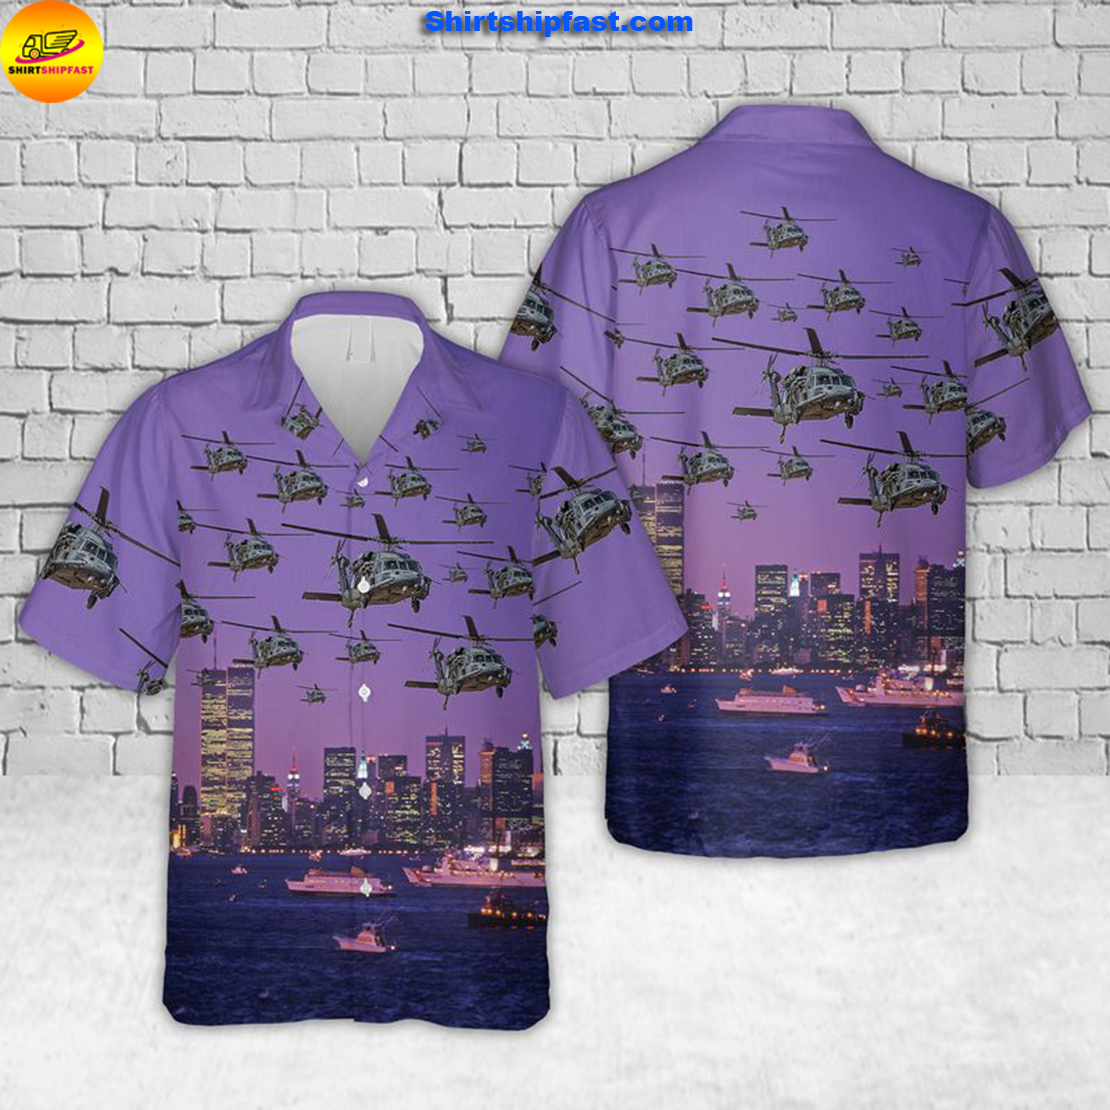 Pave Hawks of the 106th Rescue Wing New York Air National Guard Hawaiian Shirt - Style 2